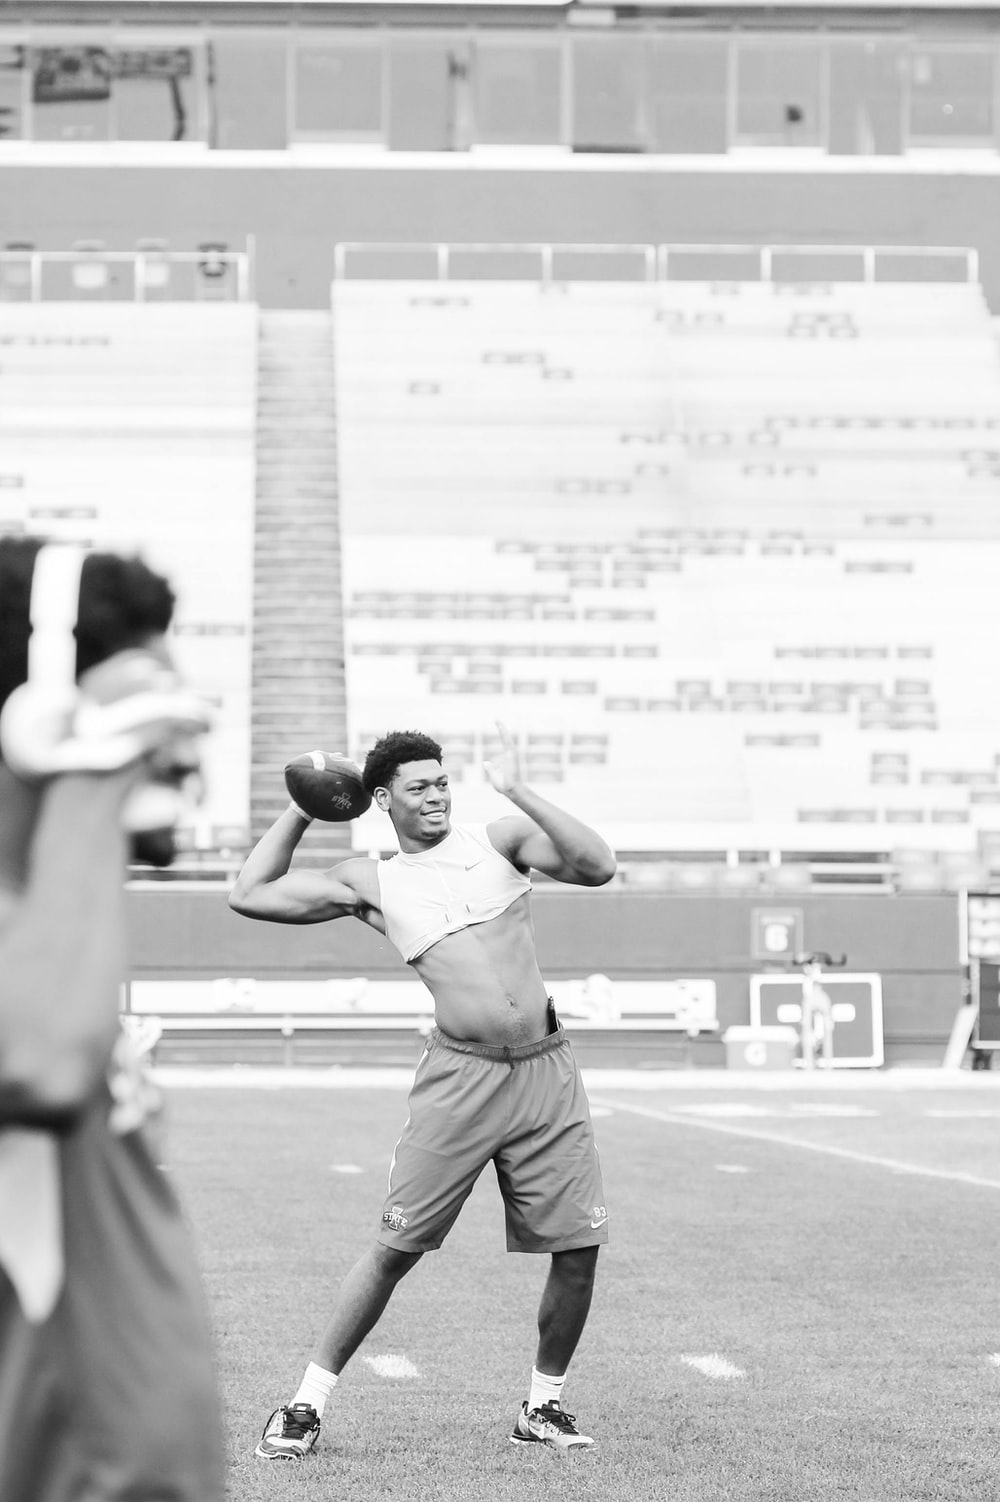 grayscale photo of man playing football